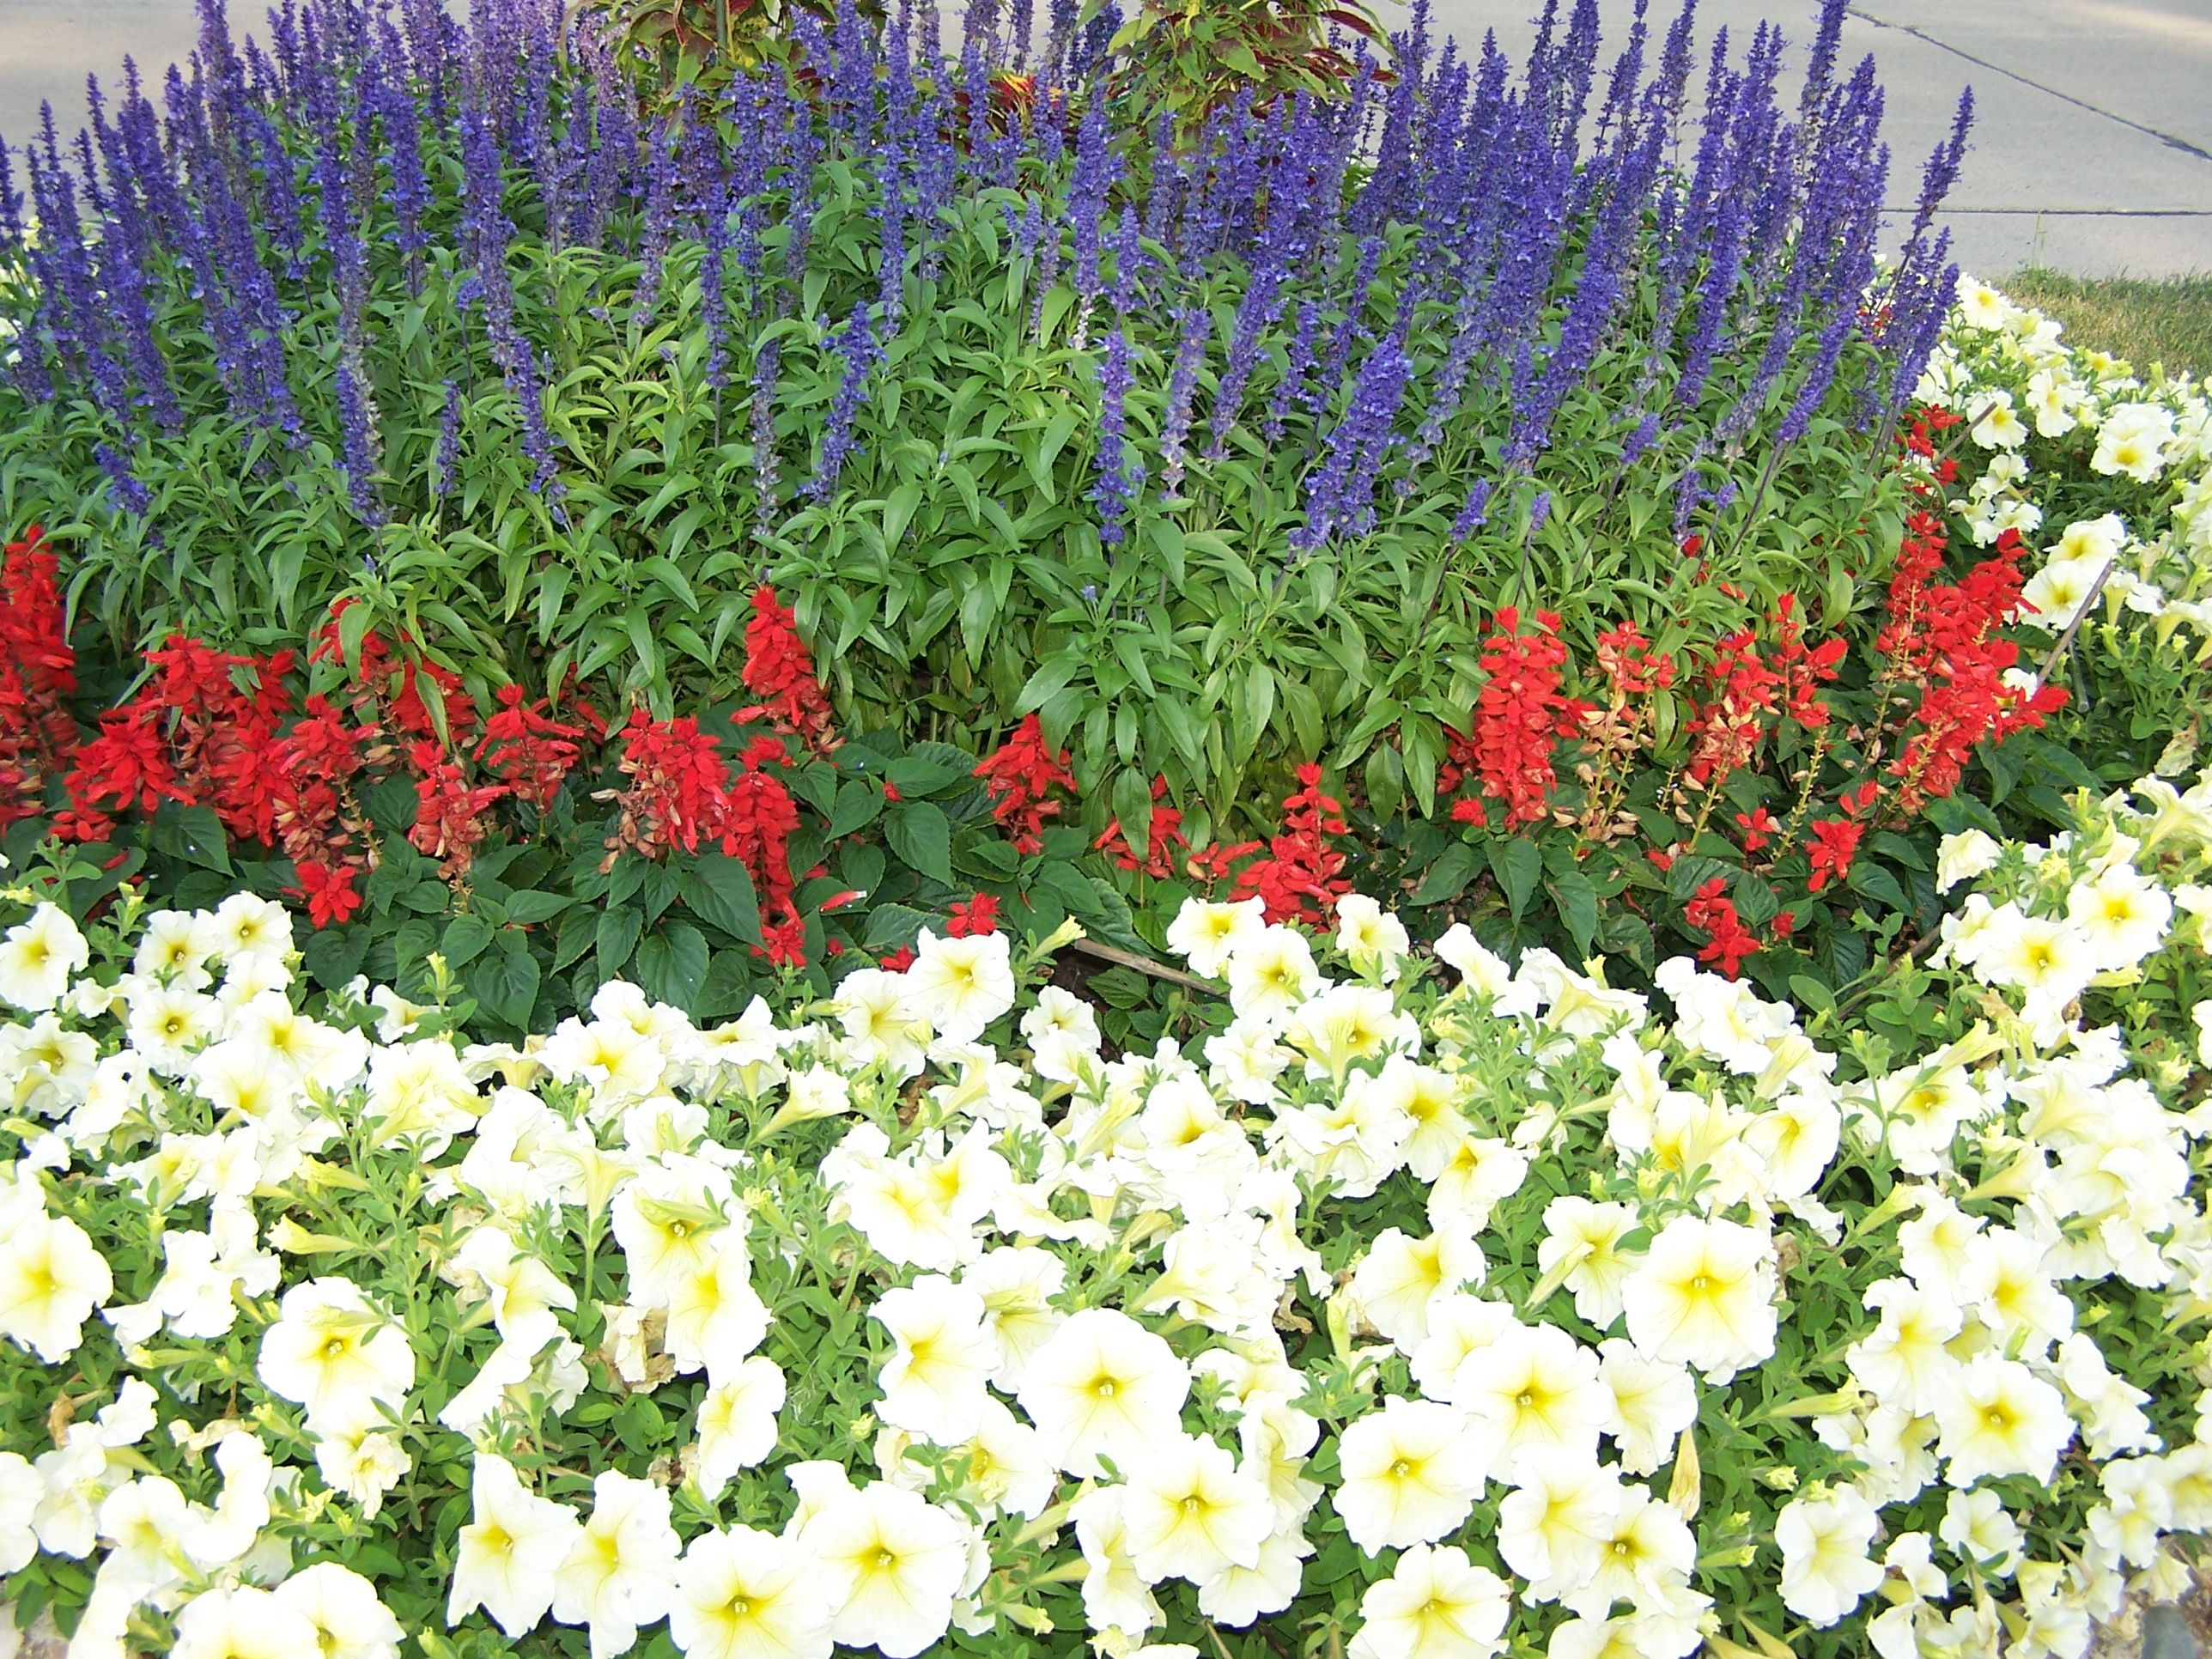 Flower bed around a tree with blue red salvia yellow petunia flower bed around a tree with blue red salvia yellow petunia izmirmasajfo